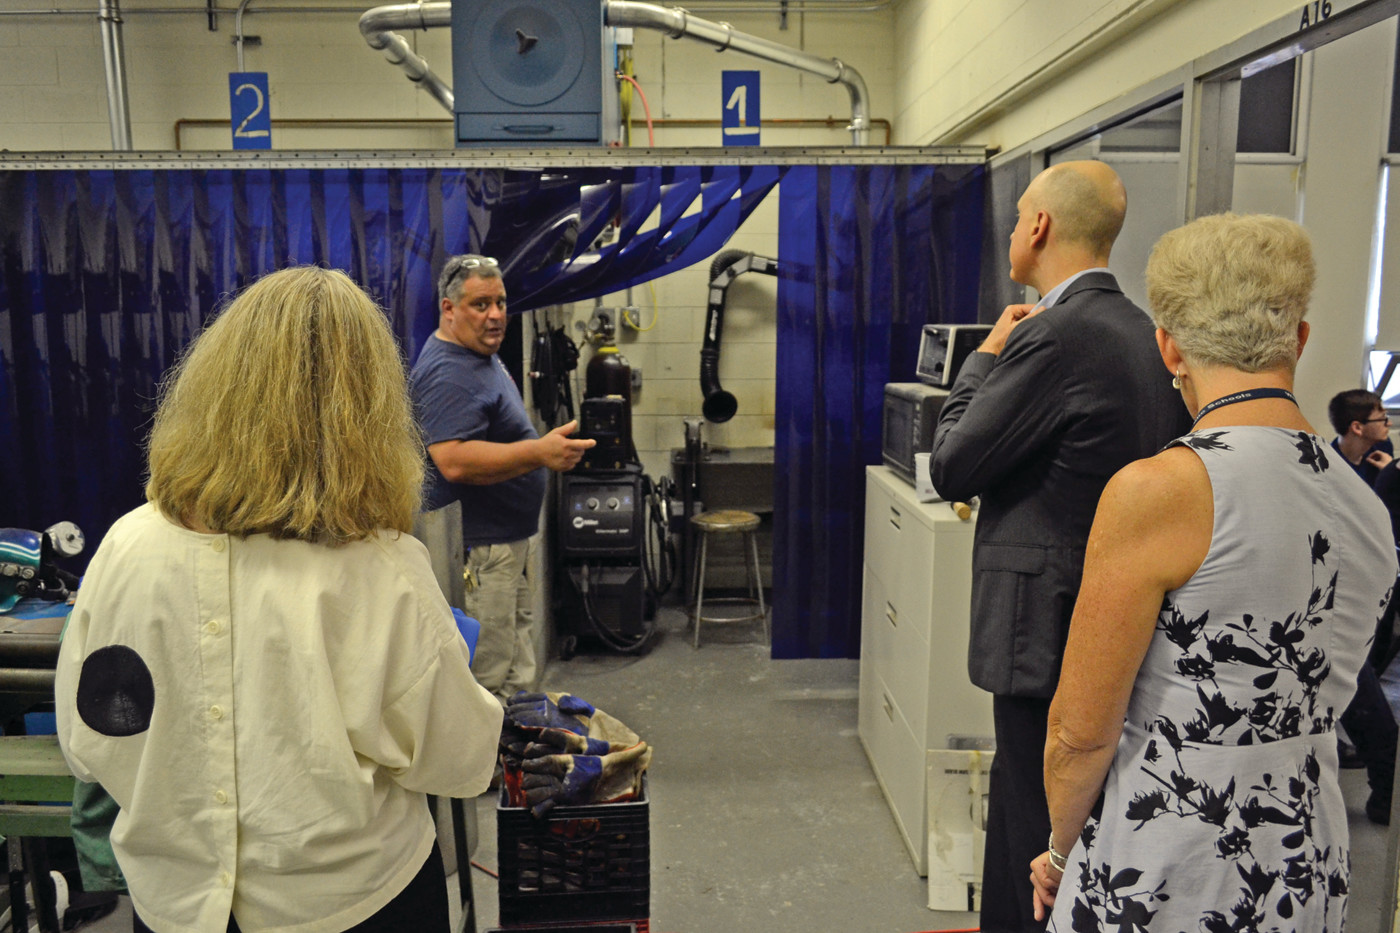 A GLIMPSE BEHIND THE CURTAIN: Marine Trades instructor Christopher Bianco shows a group of administrators, including RIDE Commissioner Ken Wagner and Deputy Commissioner Mary Ann Snider, along with guidance director Ann Hourahan, one of the welding stations in the marine trades workshop.